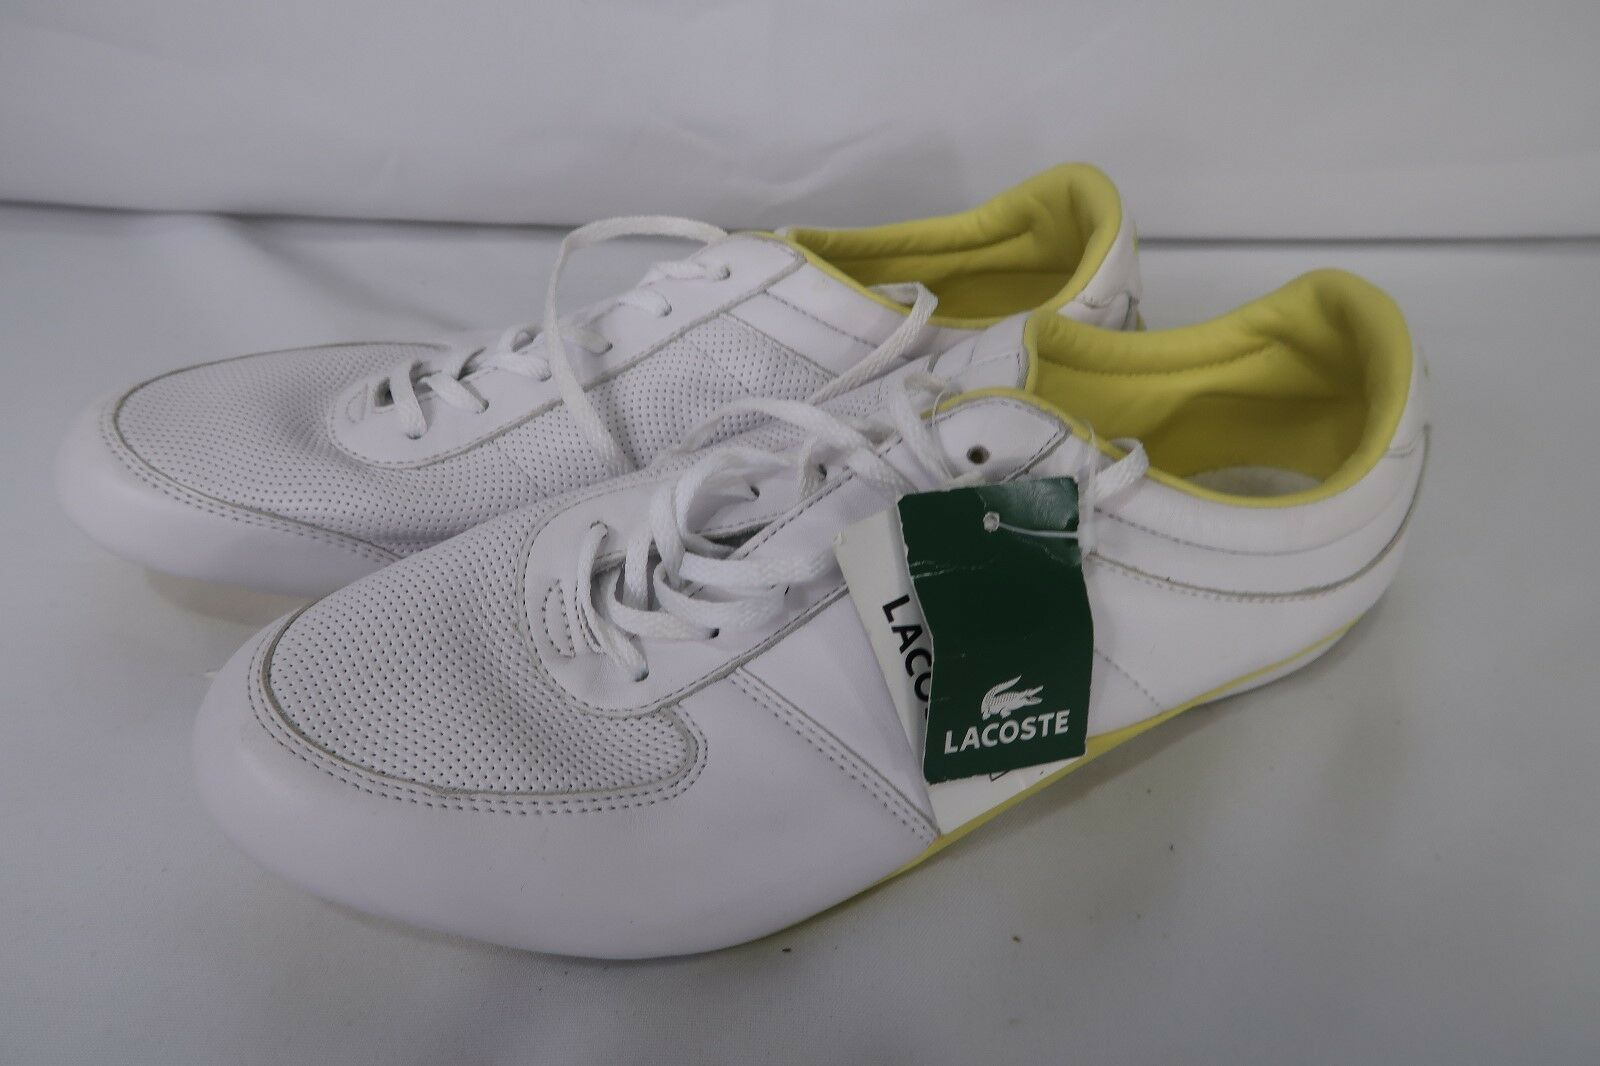 Women's Lacoste Sz 10 White Running shoes 13SPW2851 Inno 702 Twirl Wave F66 NWT